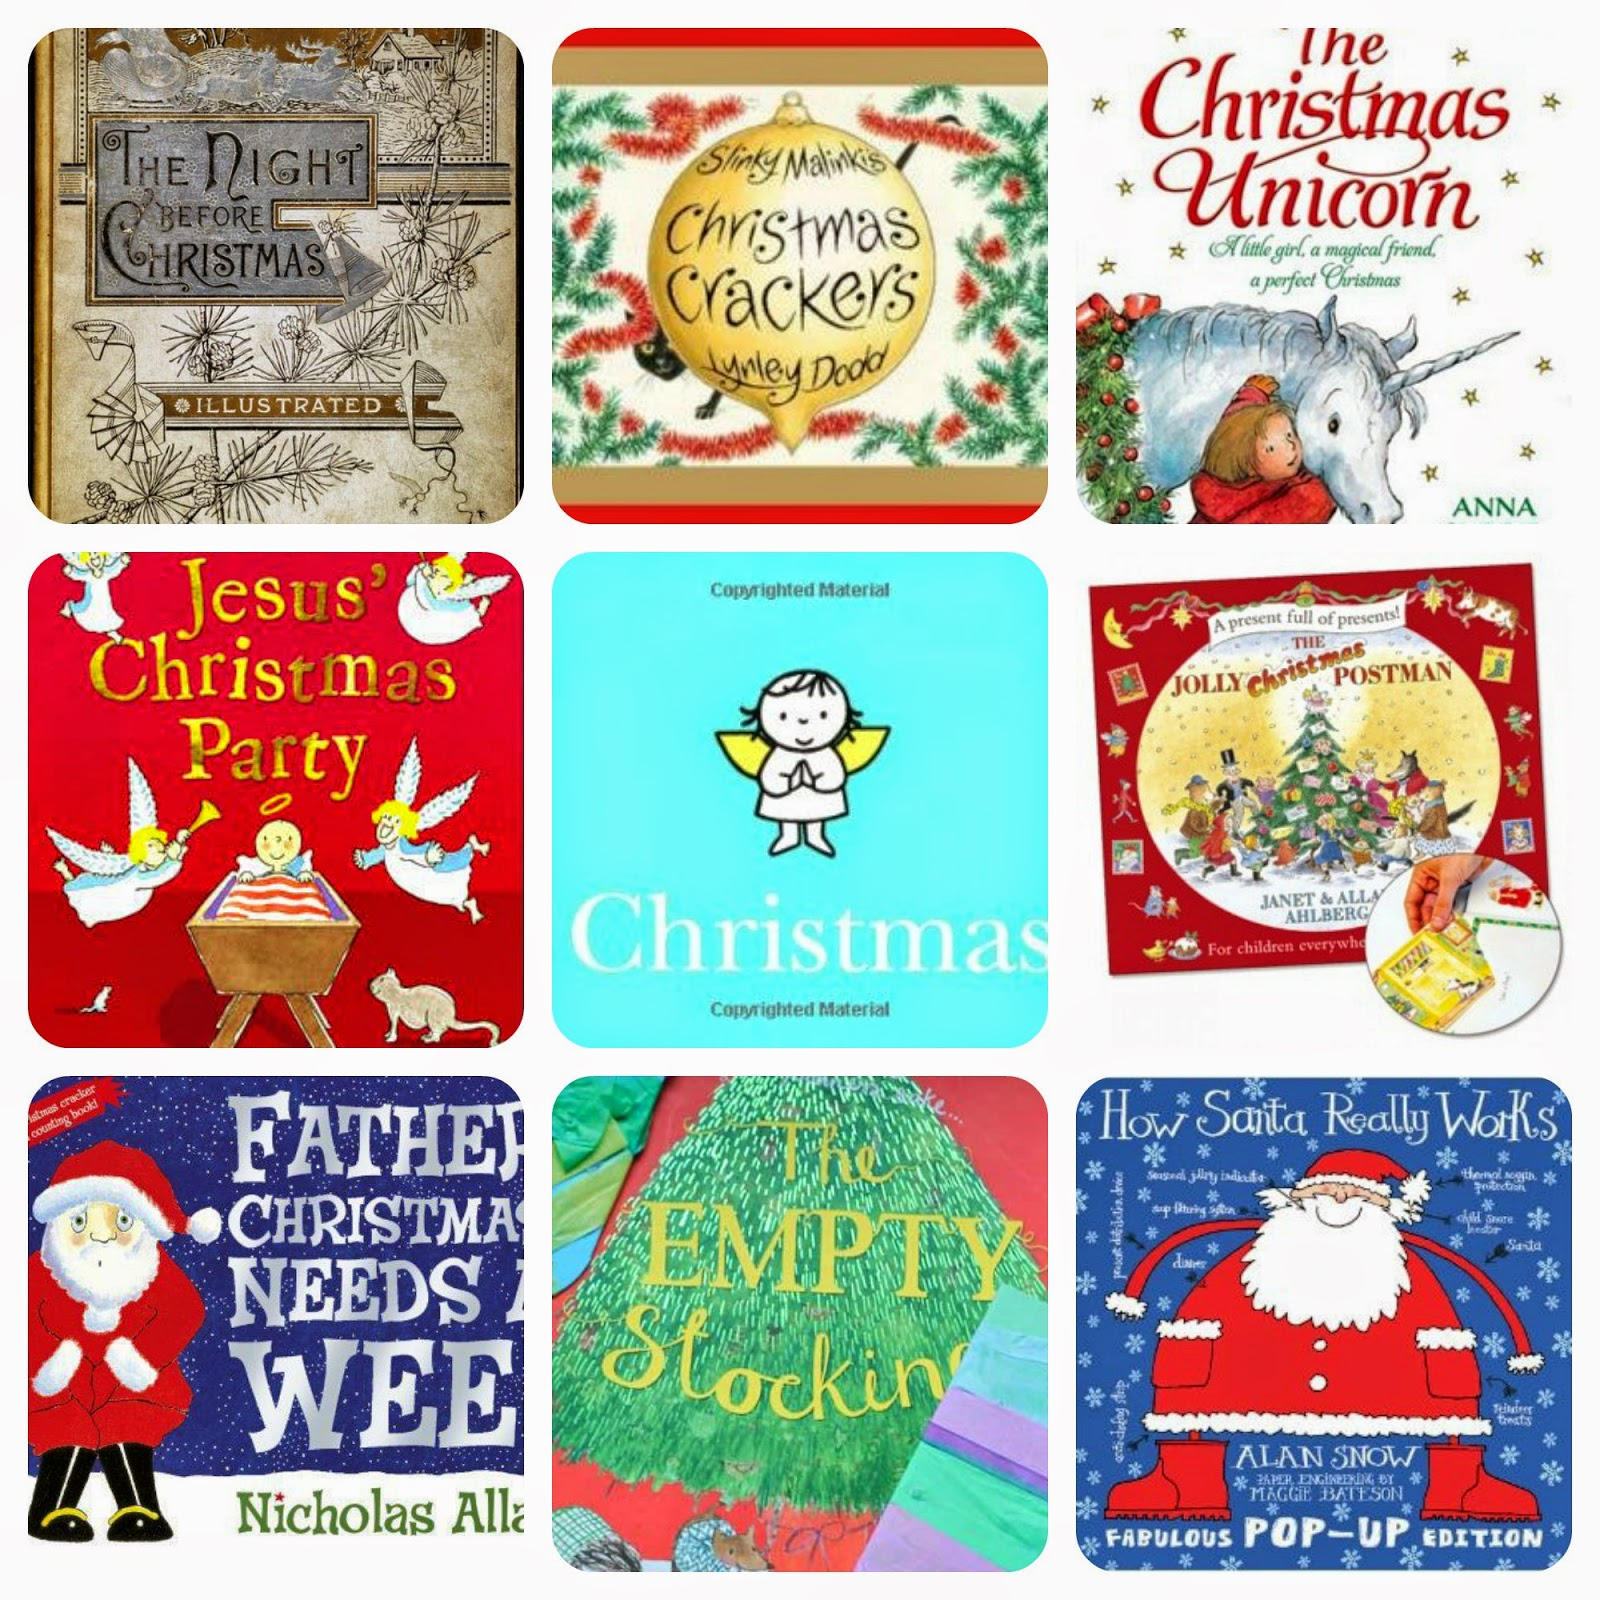 What are your top Christmas books to share with your children?